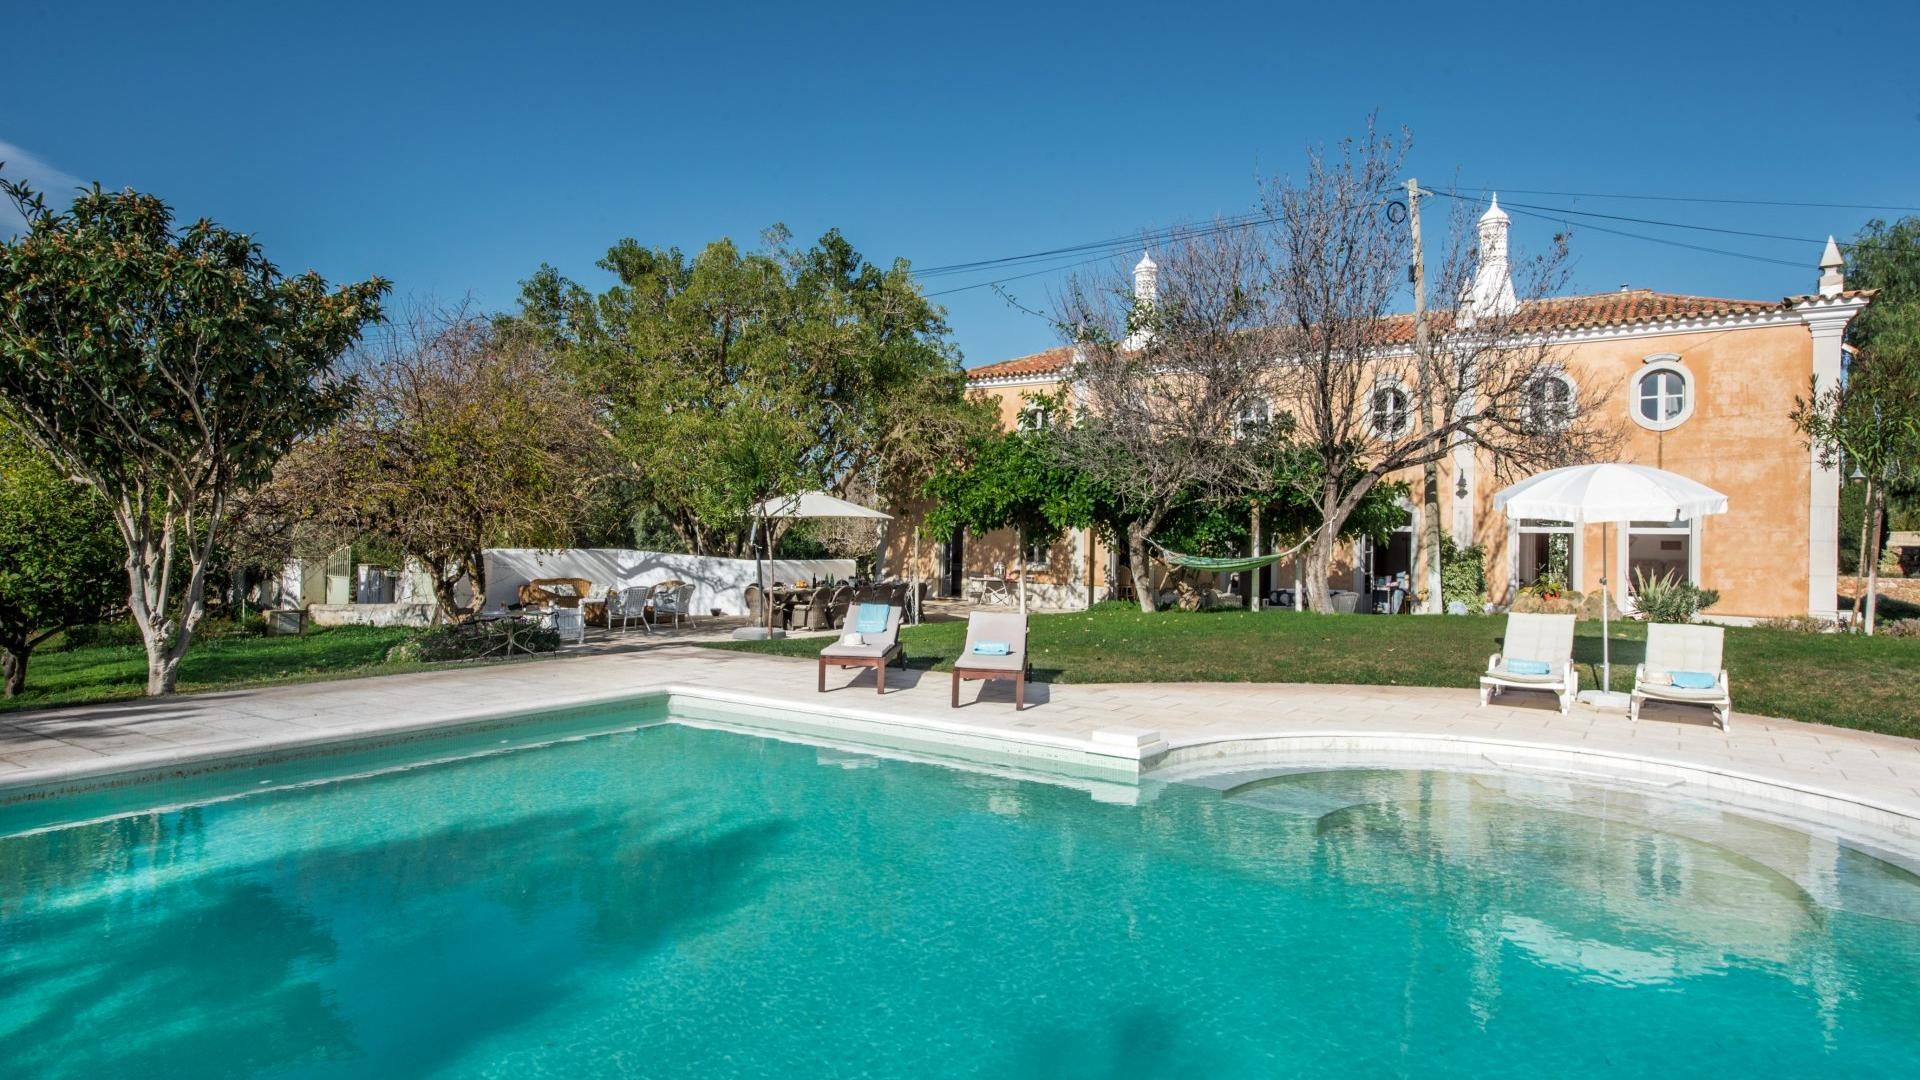 The Manor House - Vale d'Eguas, Almancil, Algarve - Villa_Mascarade_41.jpg